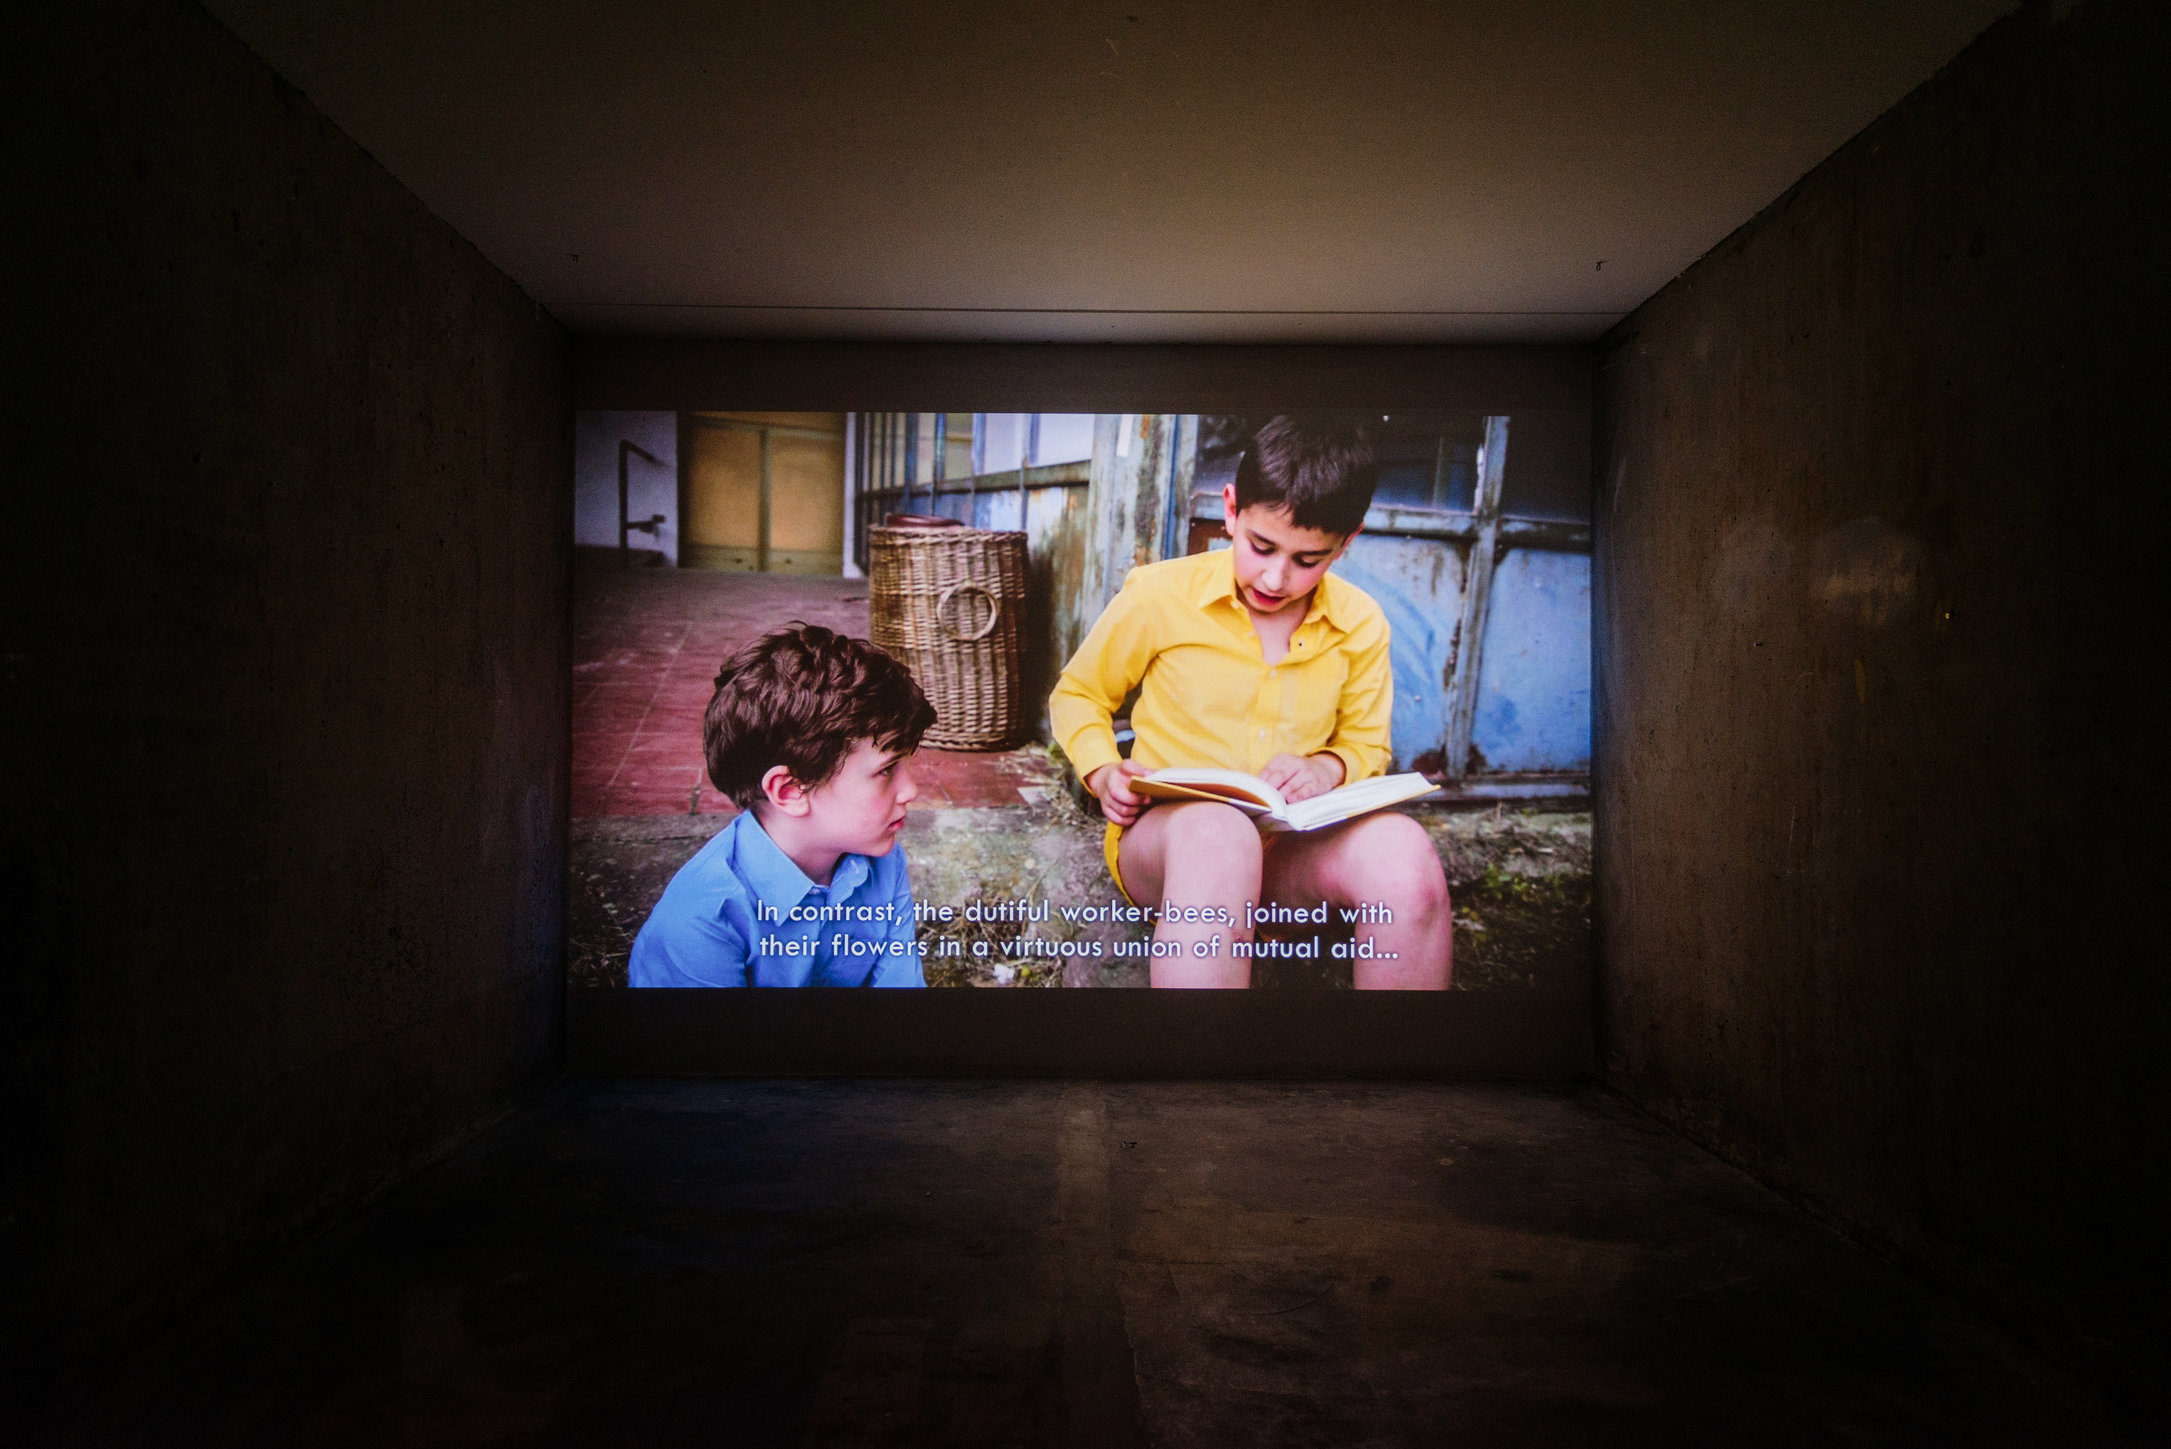 Mikhail Karikis, Children of Unquiet, 2014, installation view A Tale of a Tub. Photo: Fabian Landewee